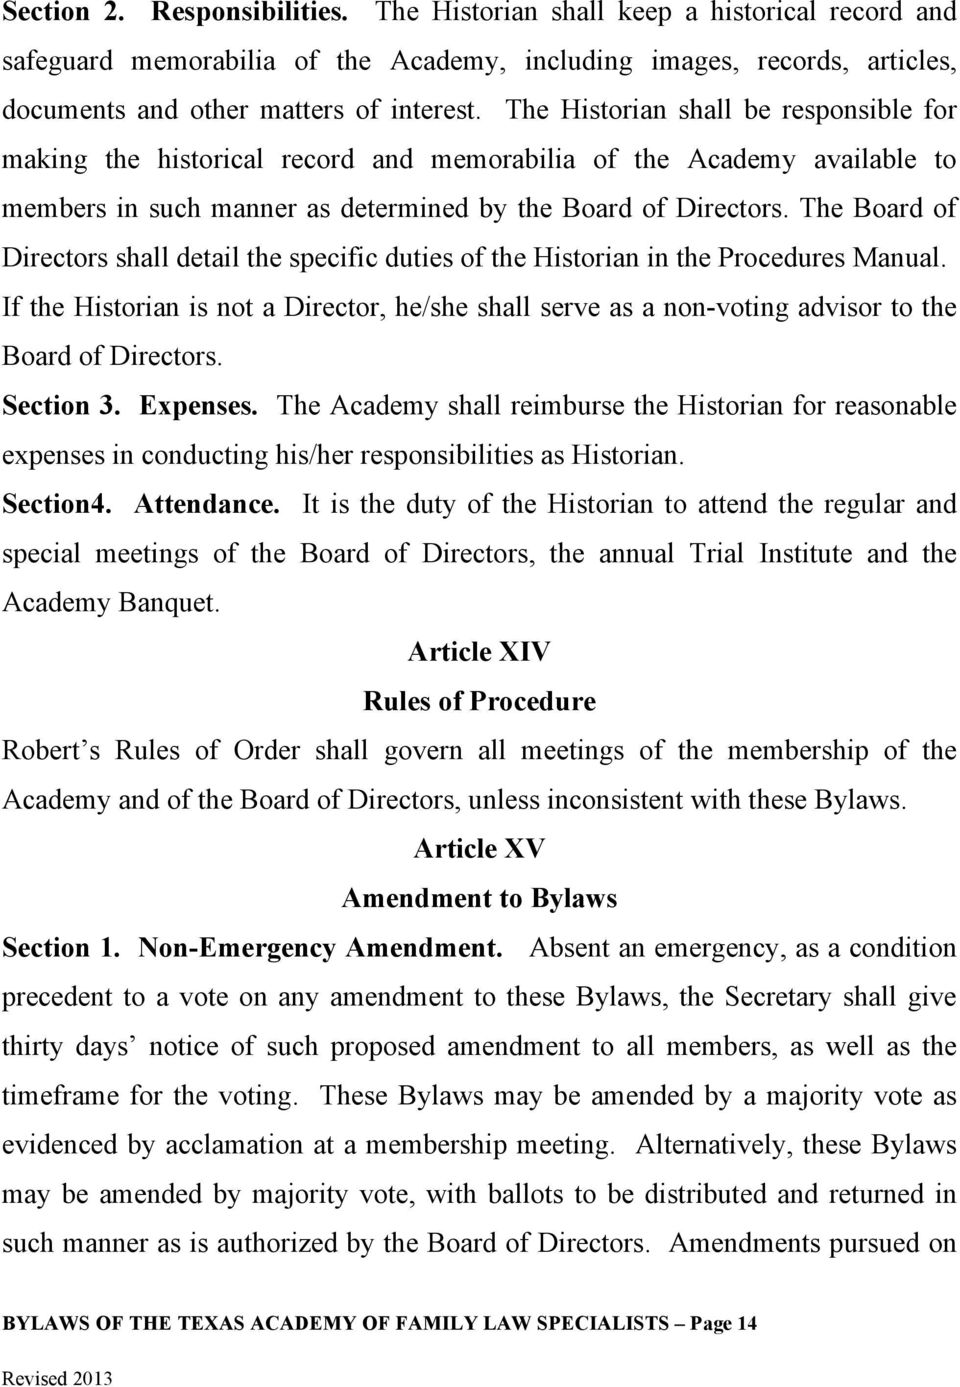 The Board of Directors shall detail the specific duties of the Historian in the Procedures Manual.